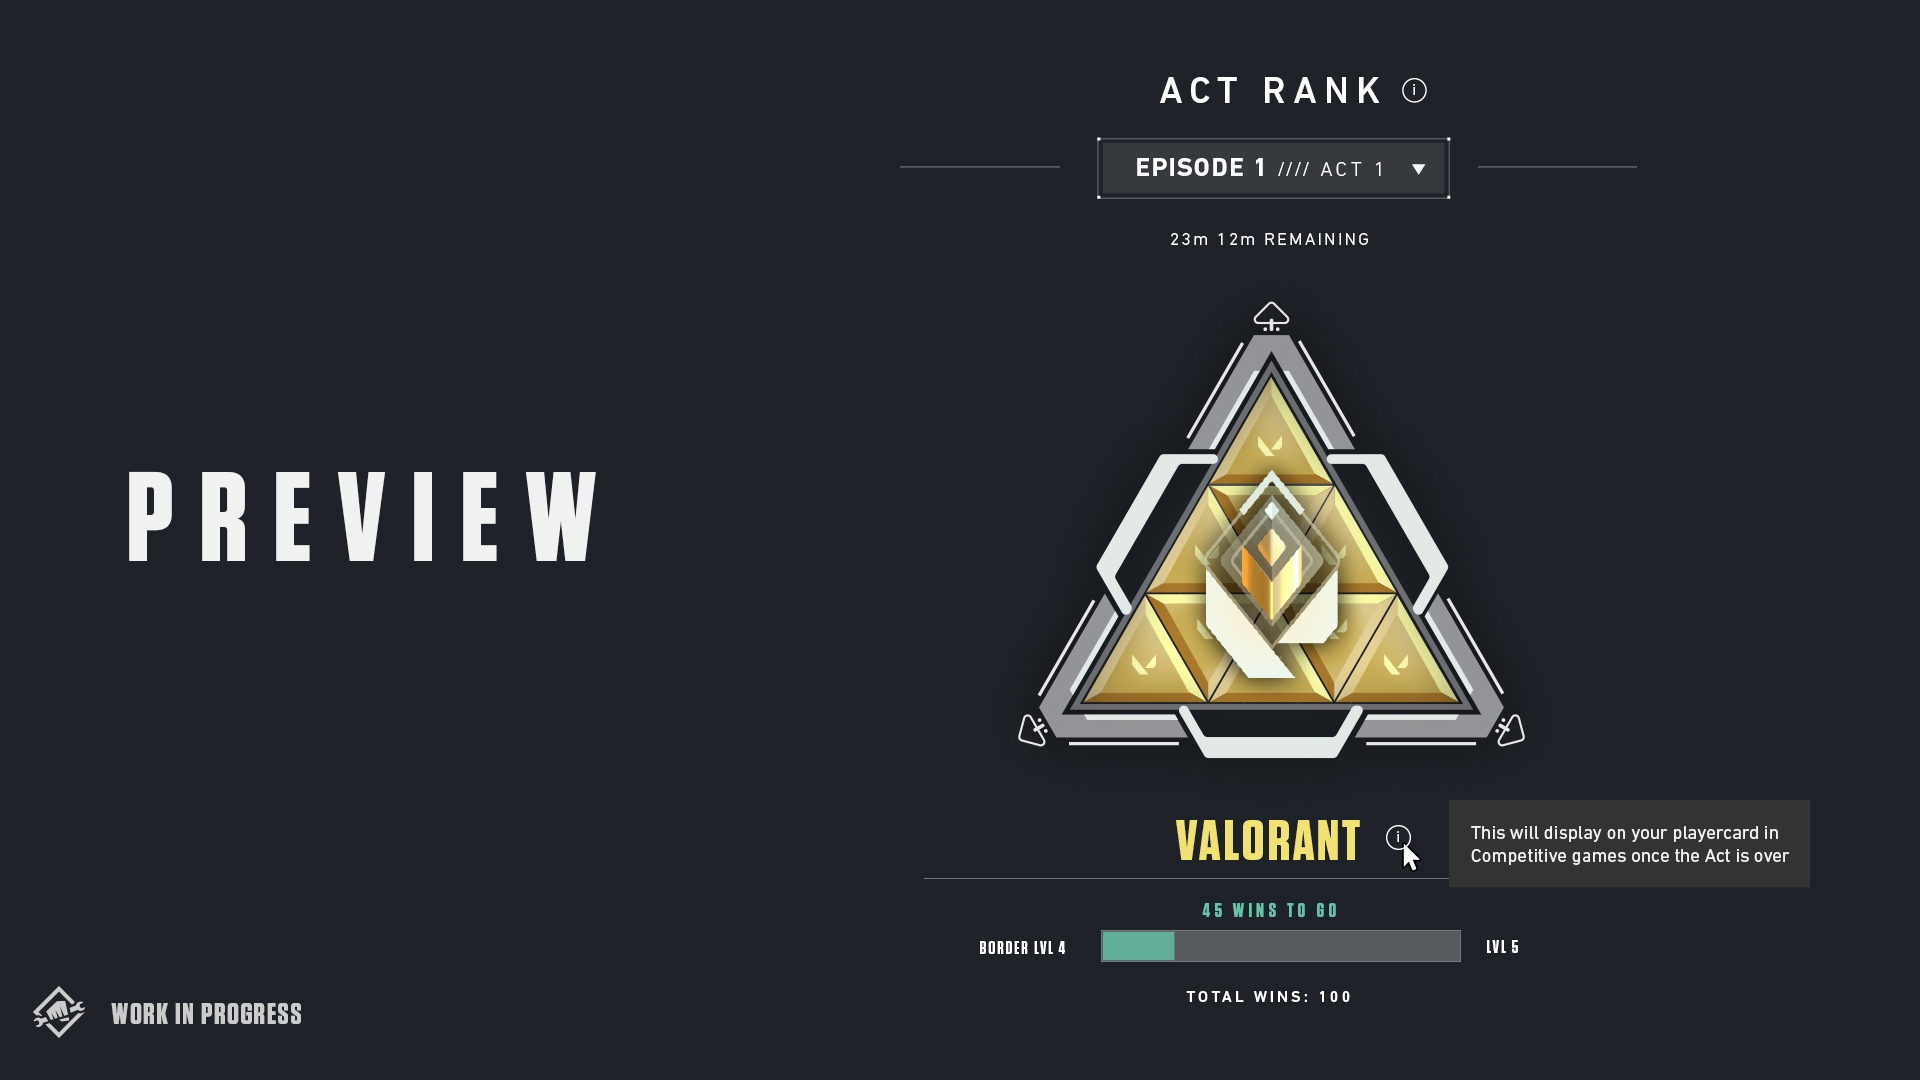 VALORANT preview act rank